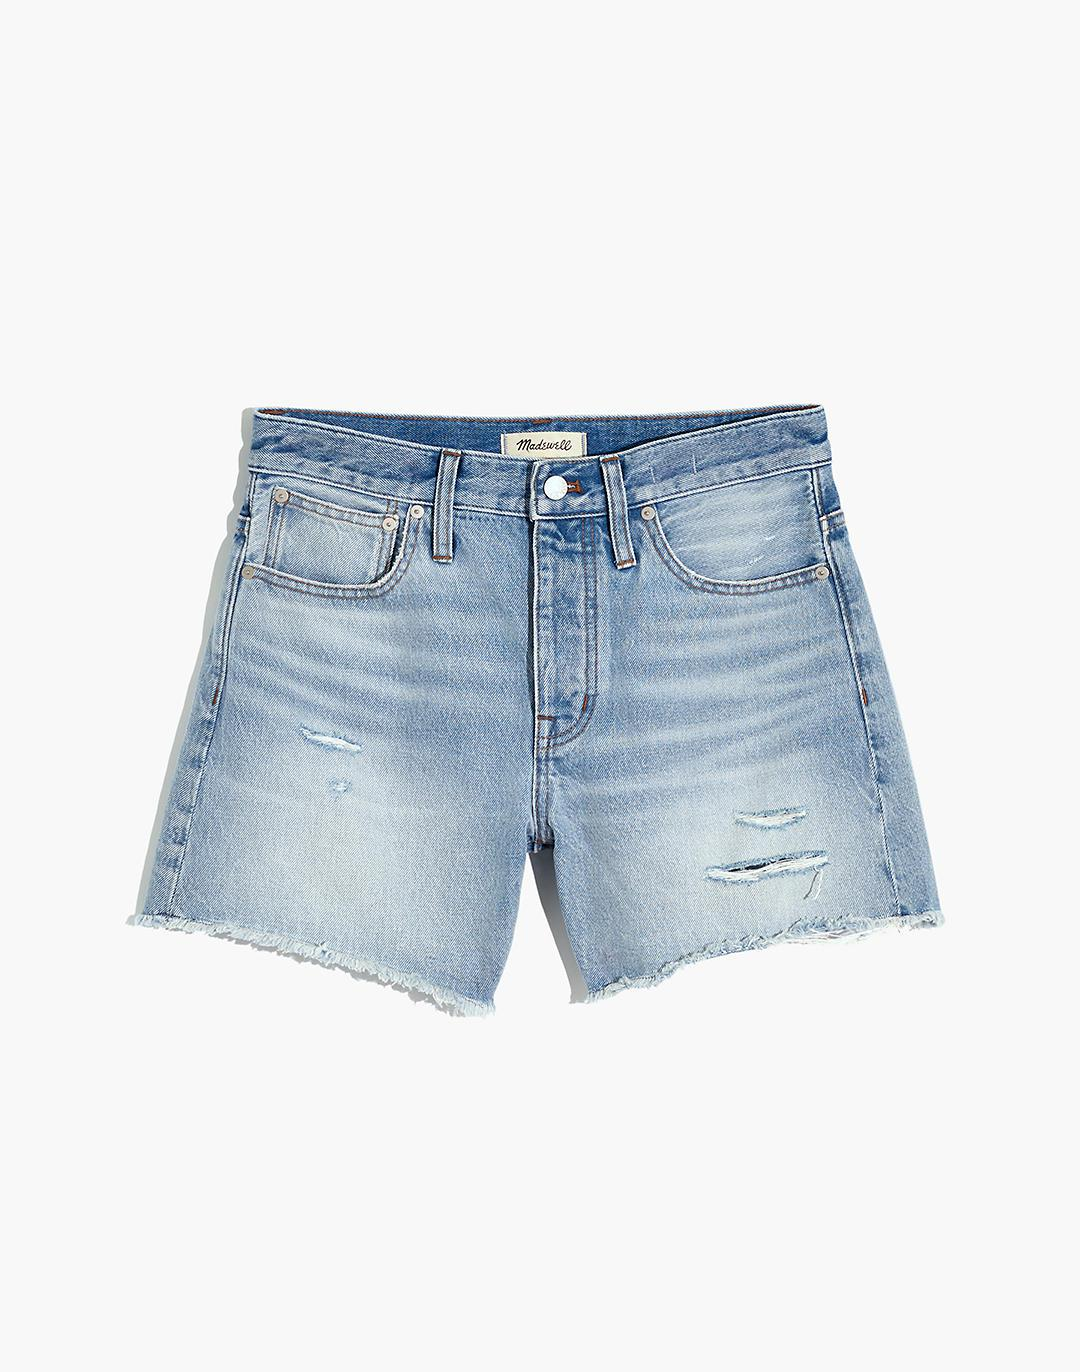 Relaxed Mid-Length Denim Shorts in Selton Wash: Ripped Edition 4